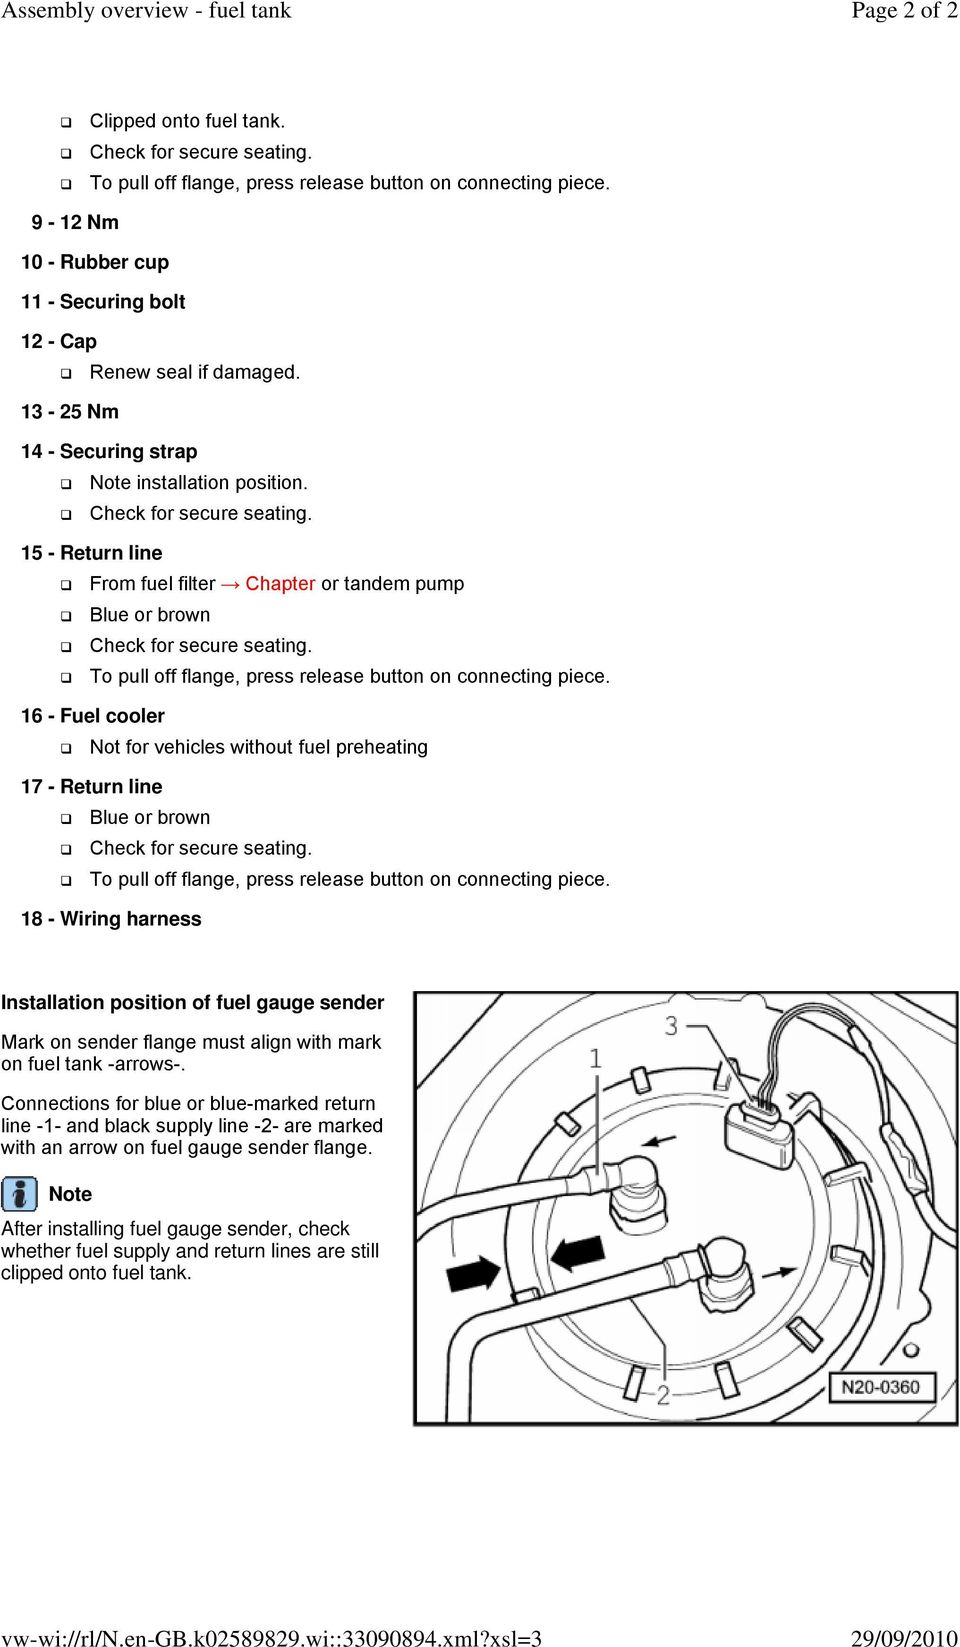 Assembly Overview Fuel Tank Pdf Volvo V70 Filter Lines 15 Return Line From Chapter Or Tandem Pump Blue Brown To Pull